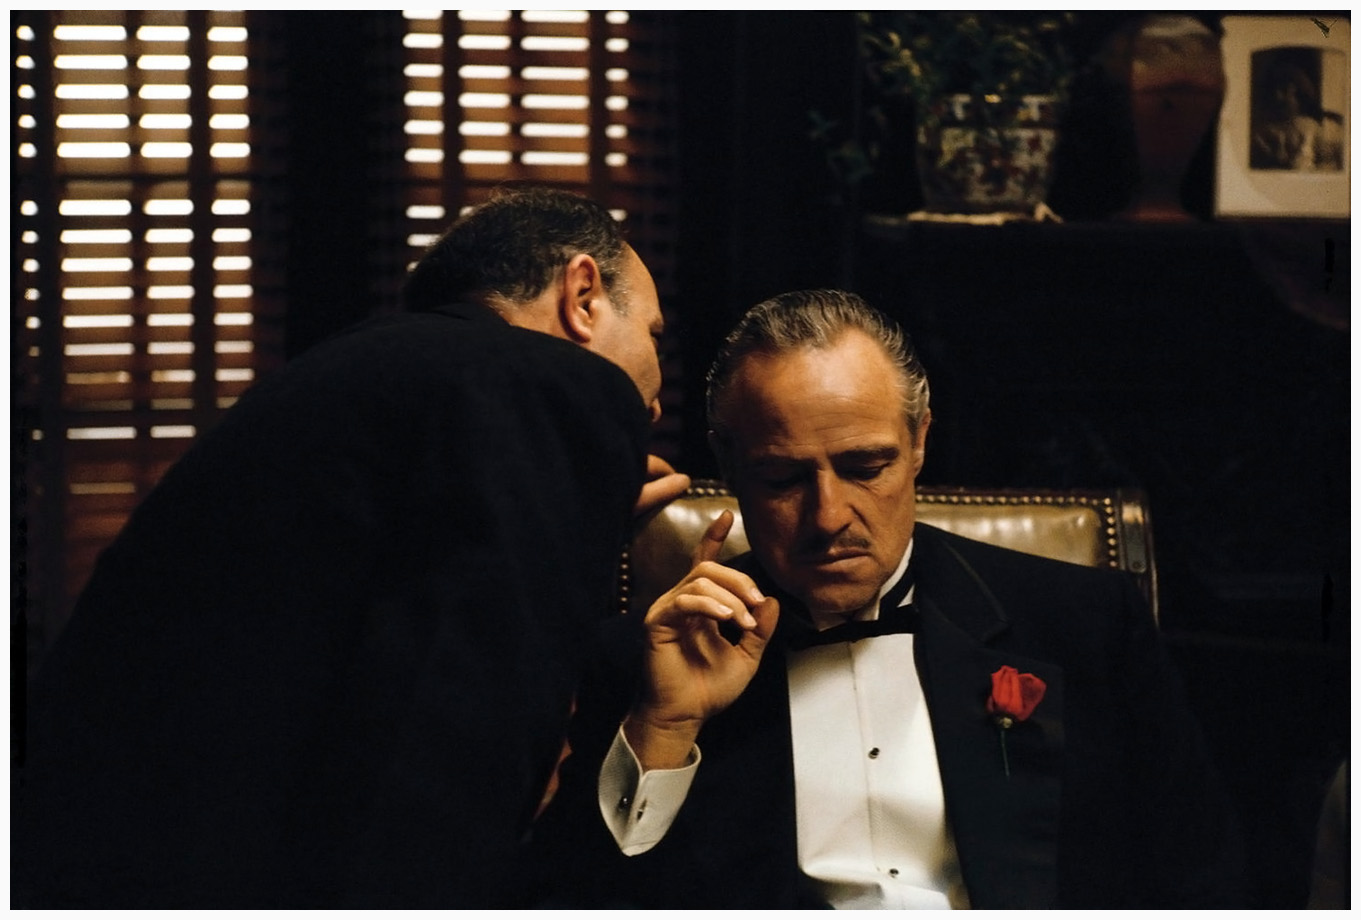 an analysis of the use of lighting in the opening scene of the film the godfather Arriving the same year as hitchcock's final great film, the godfather the analysis of directorial themes begins right at the opening credits the godfather.